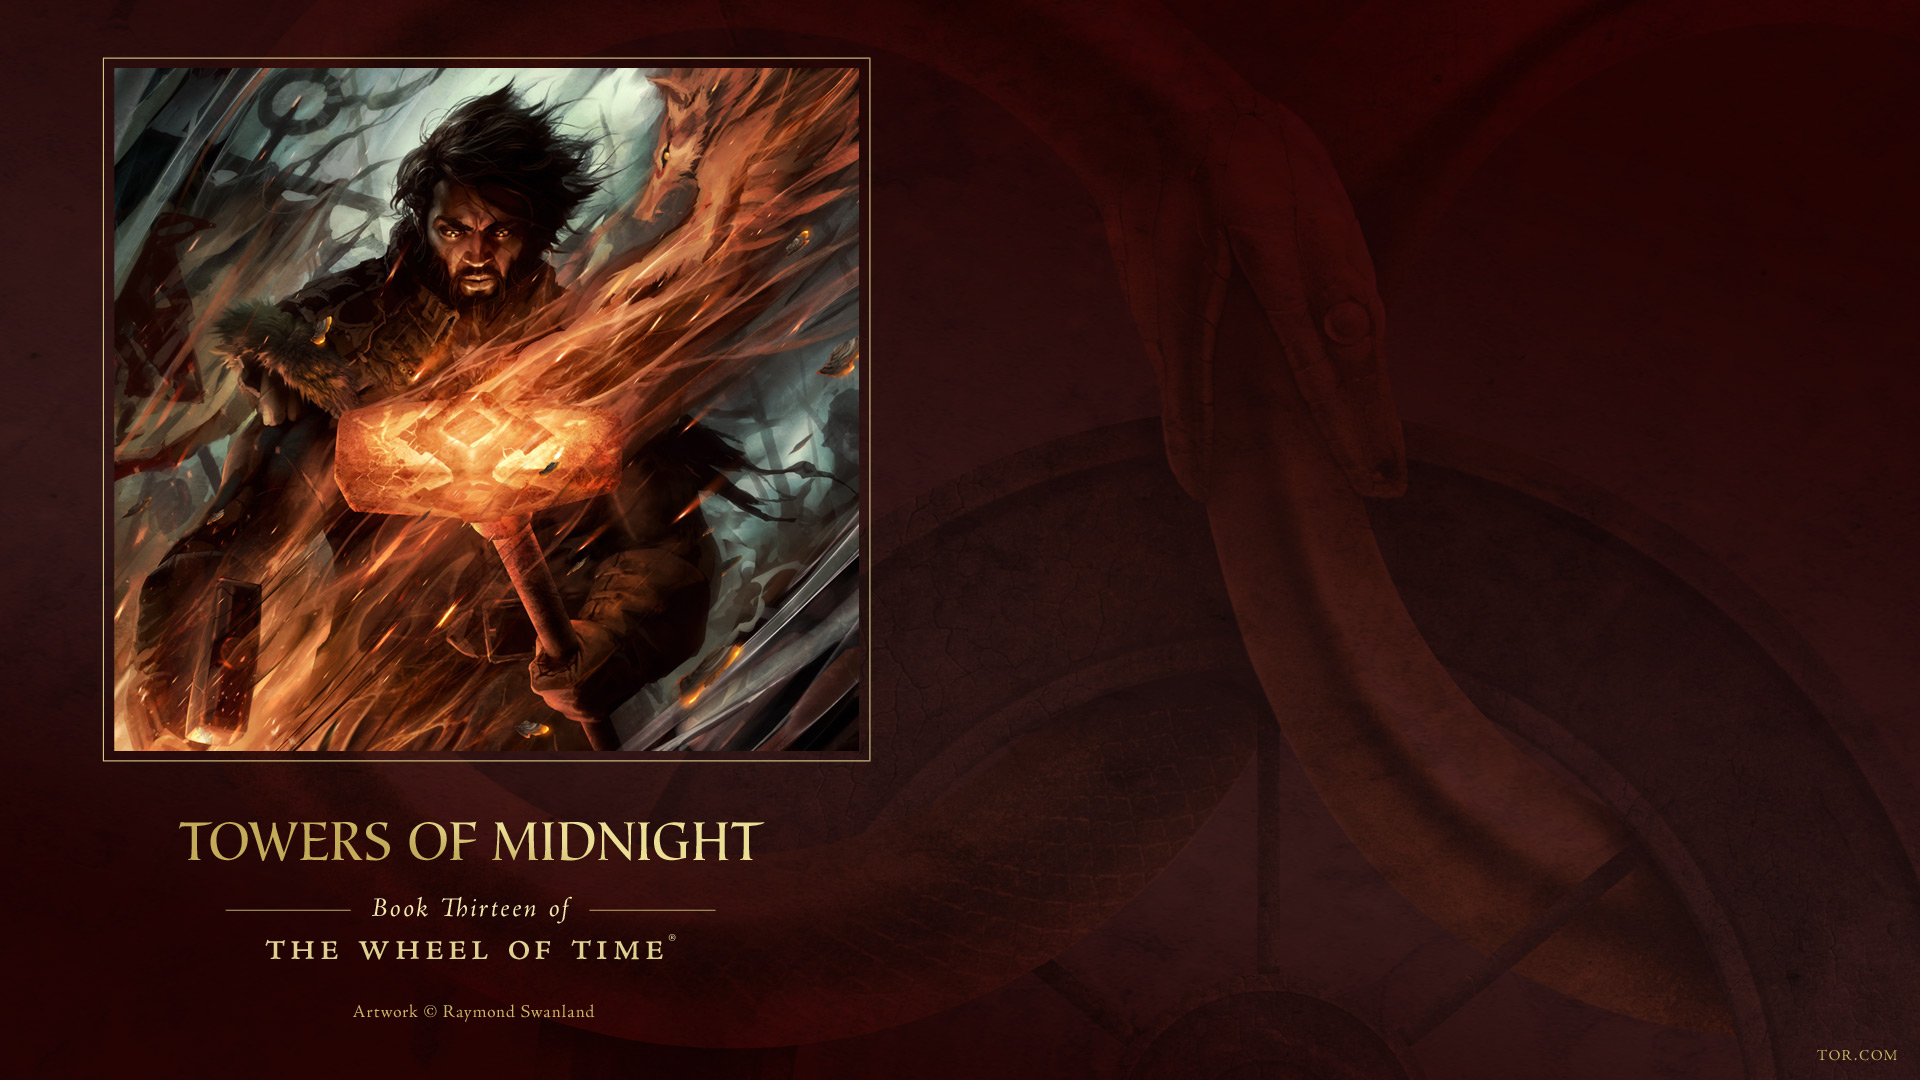 The Hundreds Wallpaper Iphone Download Free Wallpaper Of Towers Of Midnight Ebook Cover